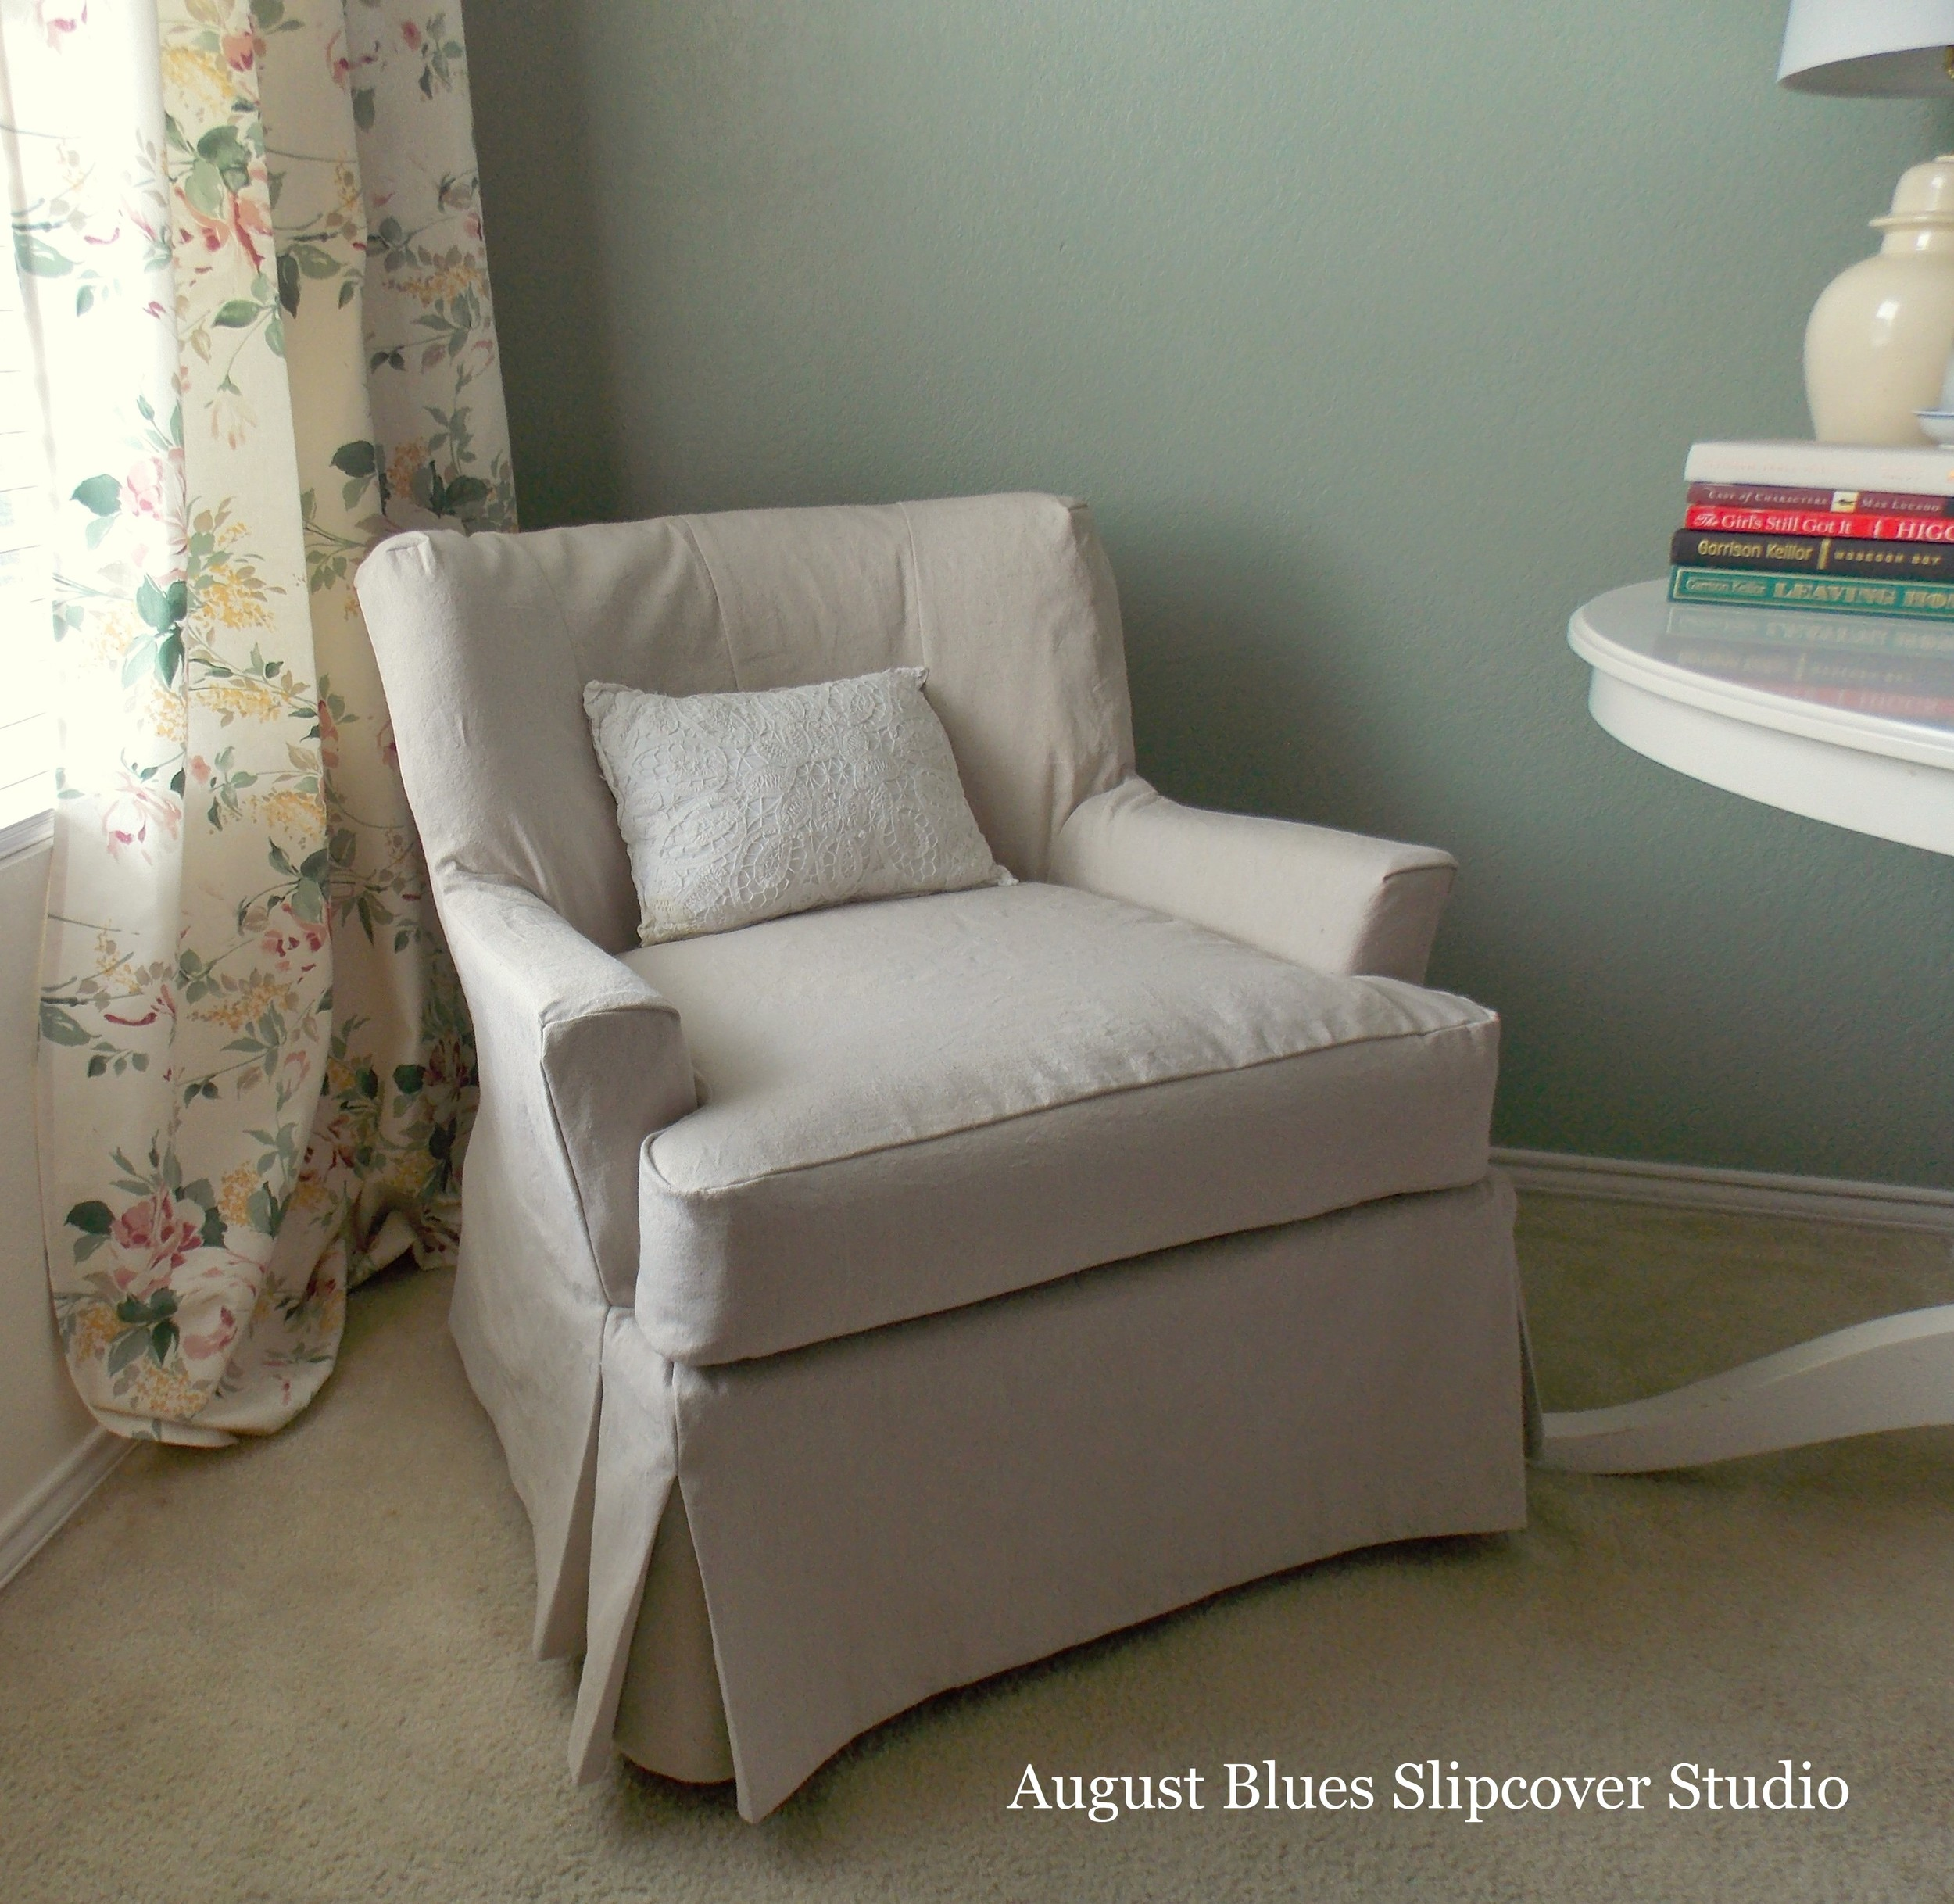 August Blues - Slipcover After